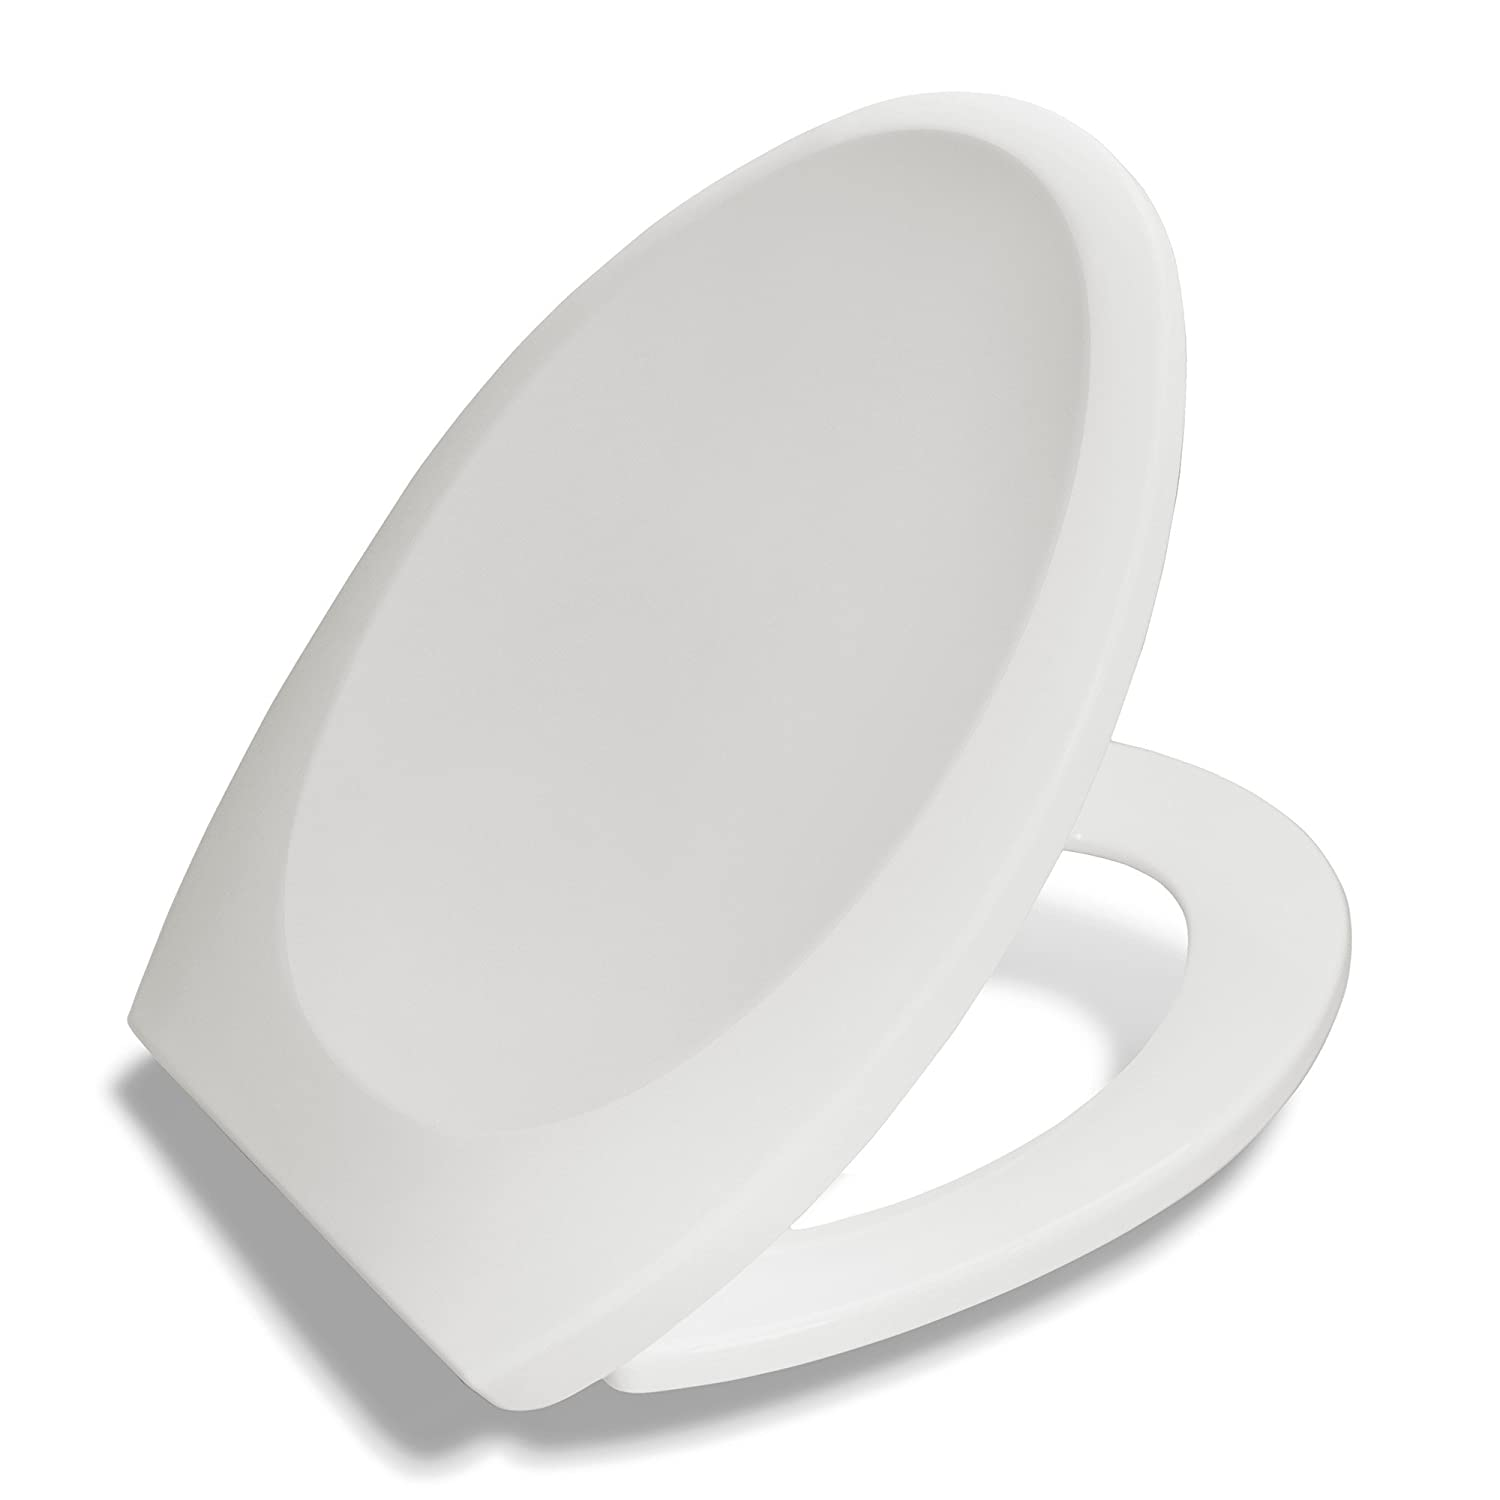 Top 10 Best Soft Close Toilet Seat Reviews 2018 2020 On Flipboard By Kinida